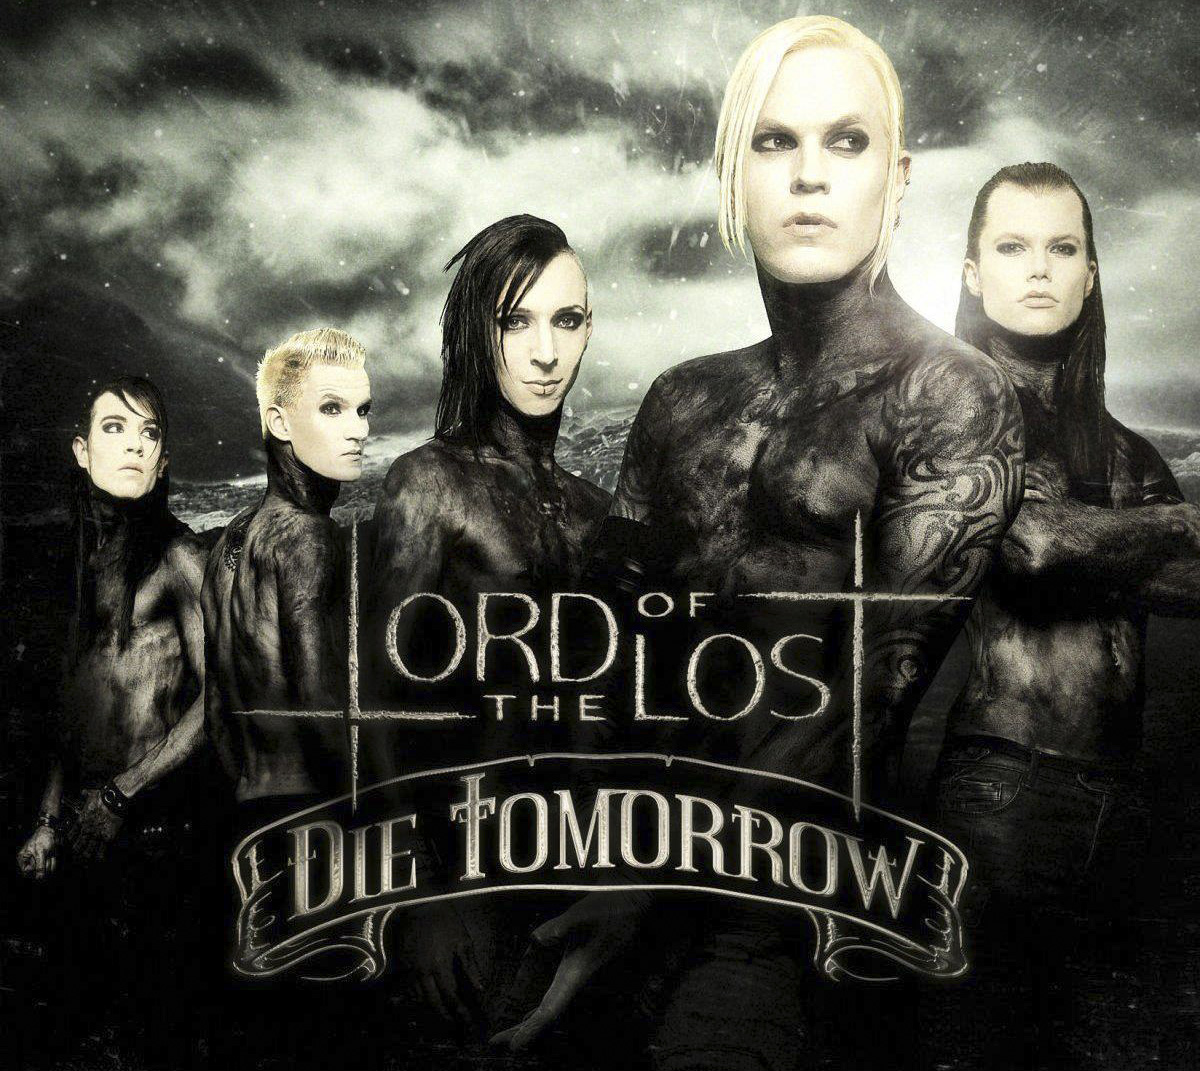 Lord of the Lost: Die Tomorrow (2012) Book Cover